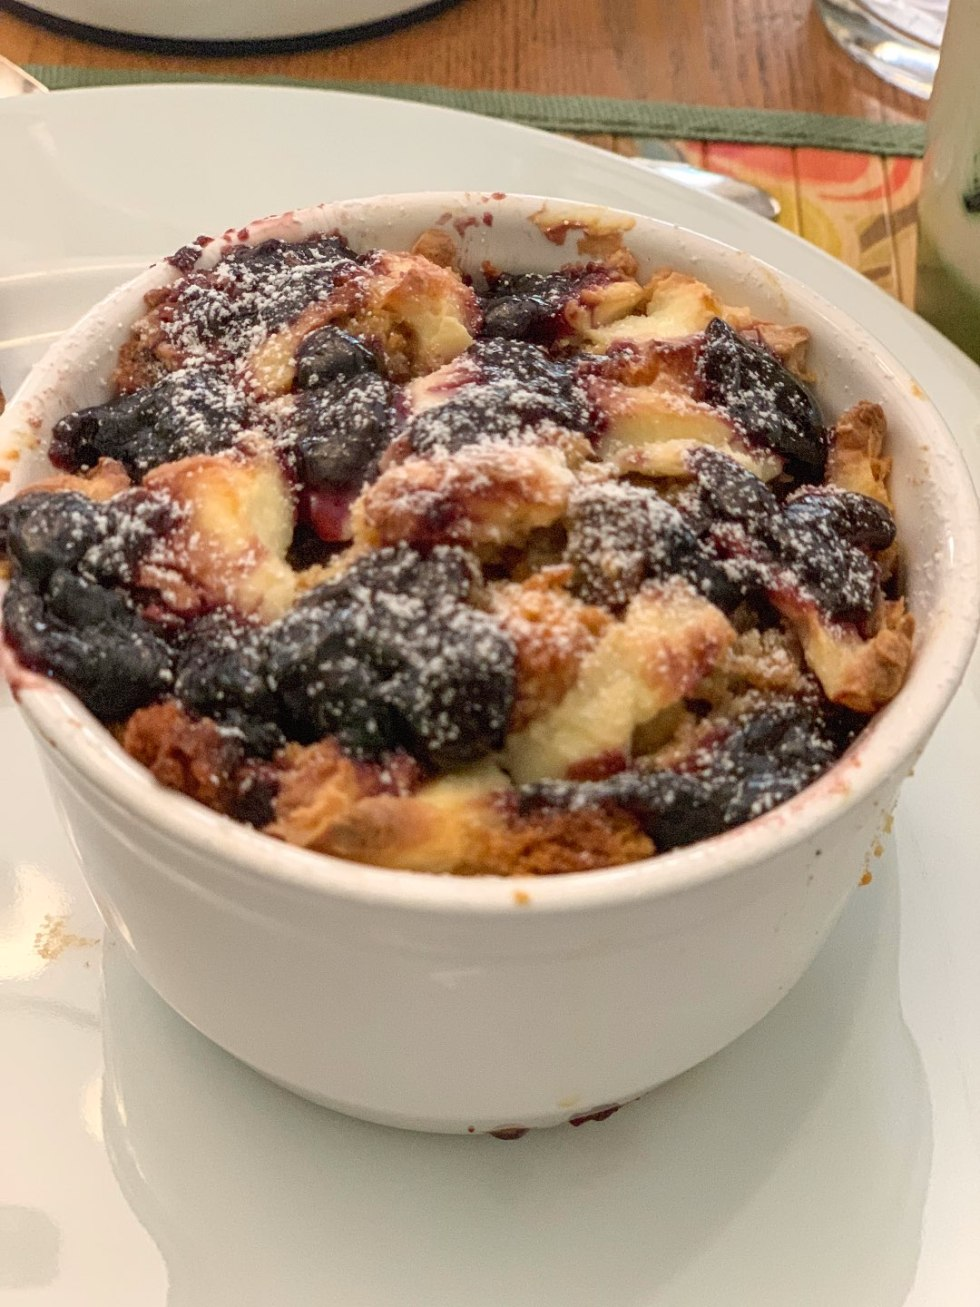 North Carolina Favorite: Between Water and Main Bed & Breakfast in Belhaven - I'm Fixin' To - @mbg0112 | North Carolina Favorite: Between Water and Main Bed & Breakfast in Belhaven by popular North Carolina Blogger, I'm Fixin' To: image of blueberry lemon bread pudding at Between Water and Main Bed and Breakfast.